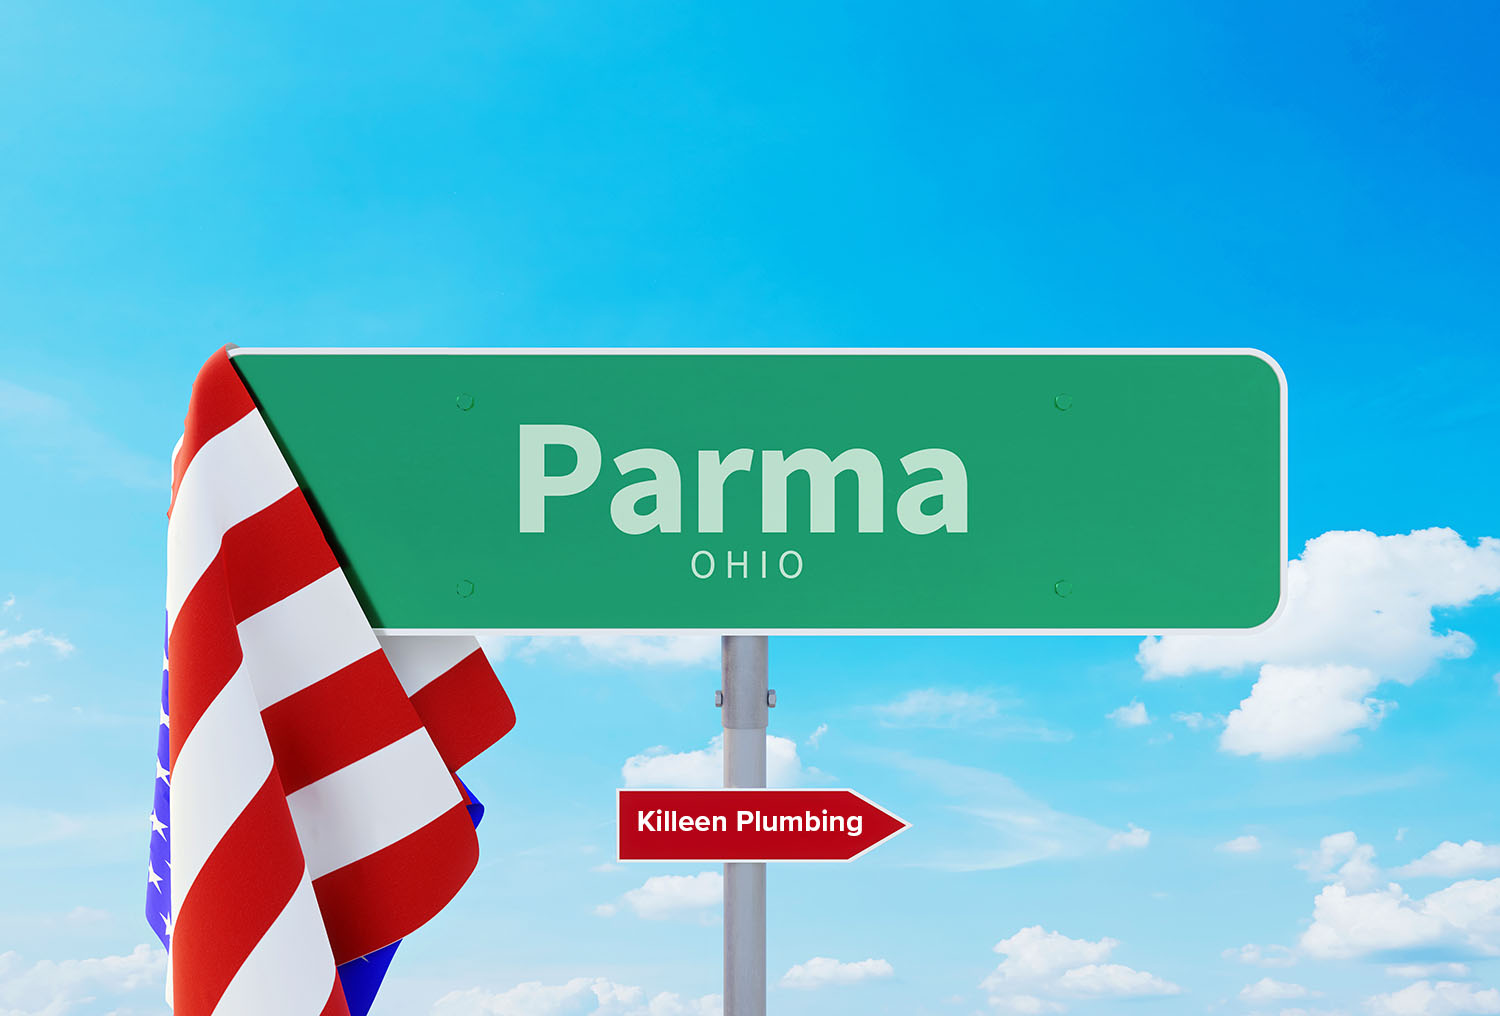 A sign for Parma, OH, pointing toward Killeen Plumbing